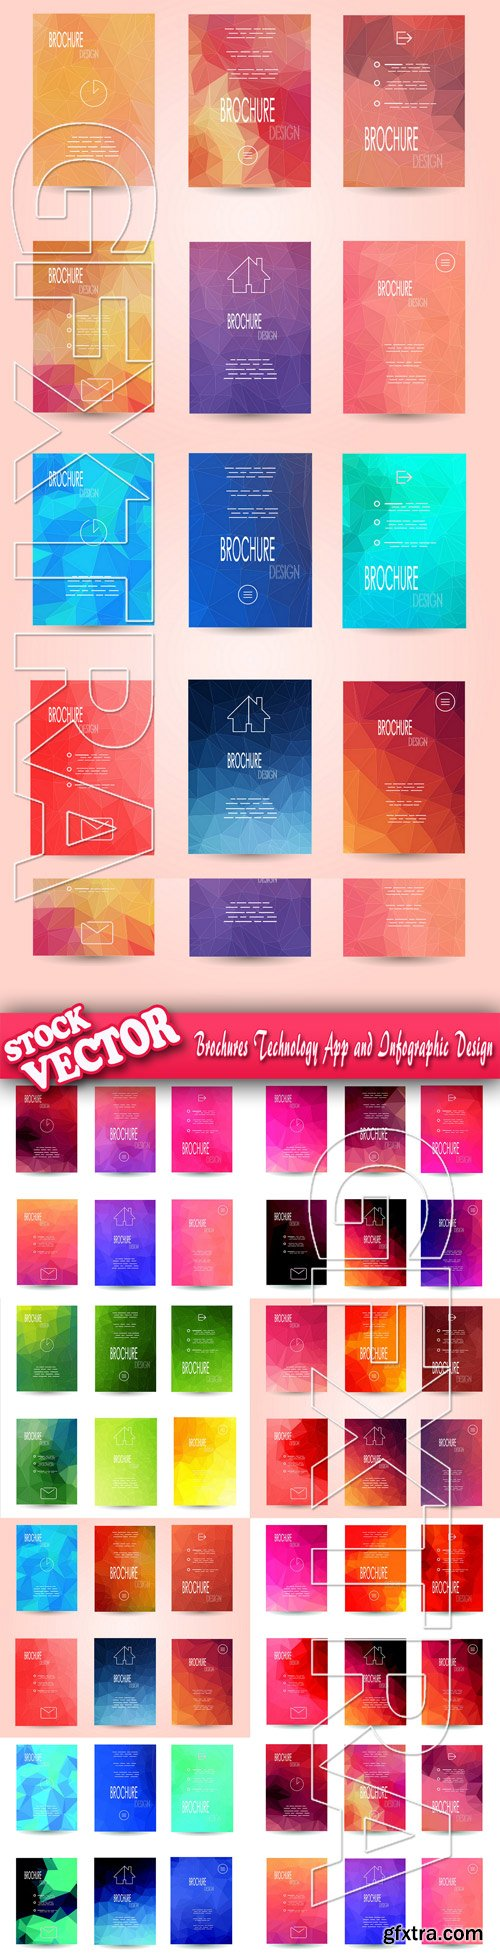 Stock Vector - Brochures Technology App and Infographic Design